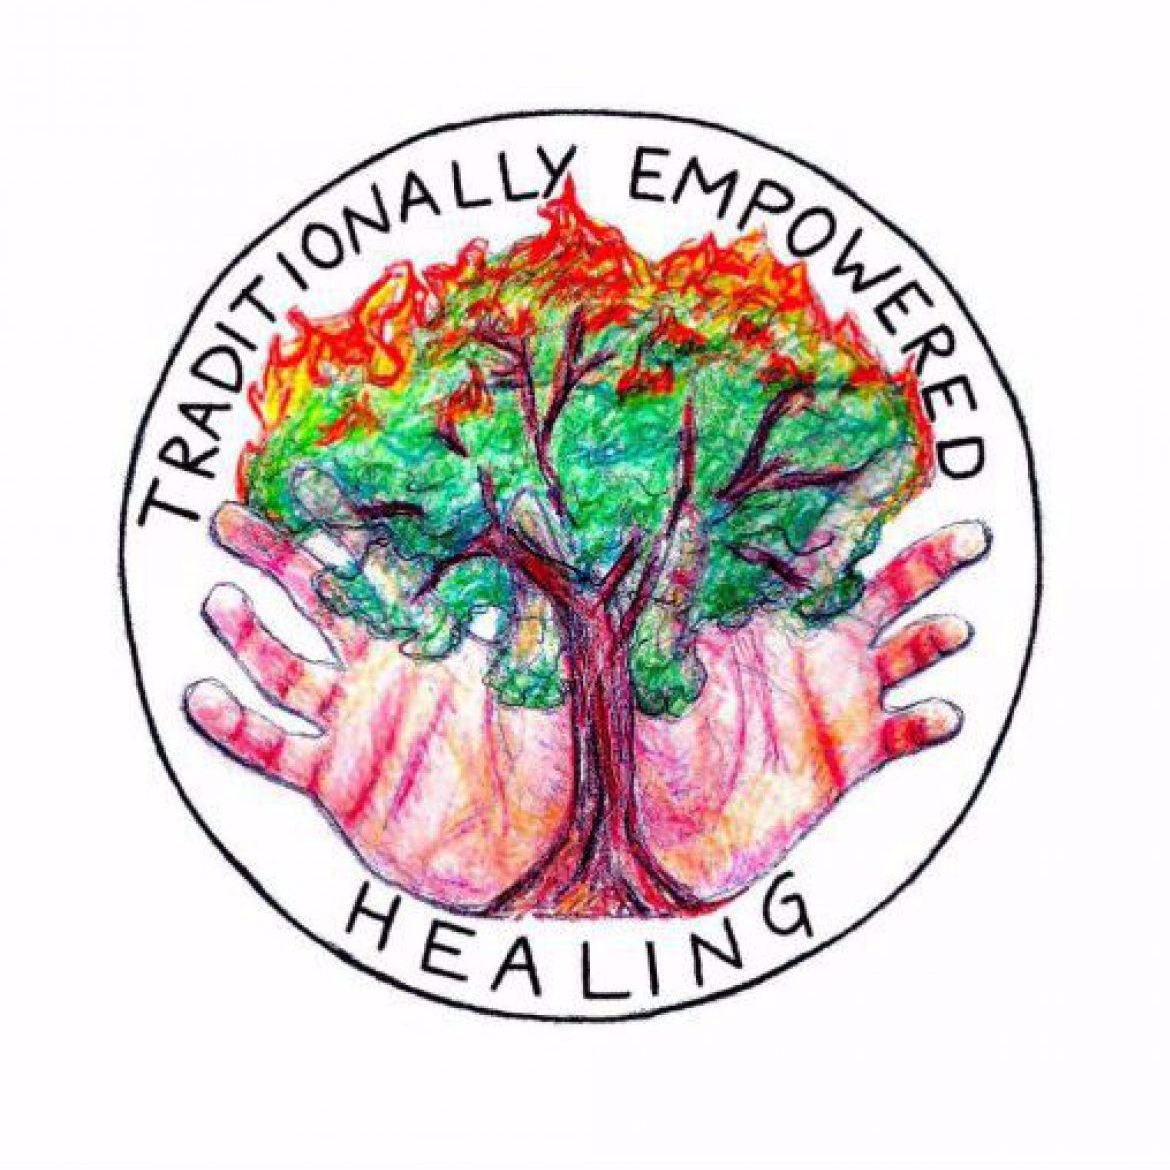 Traditionally Empowered Healing LLC